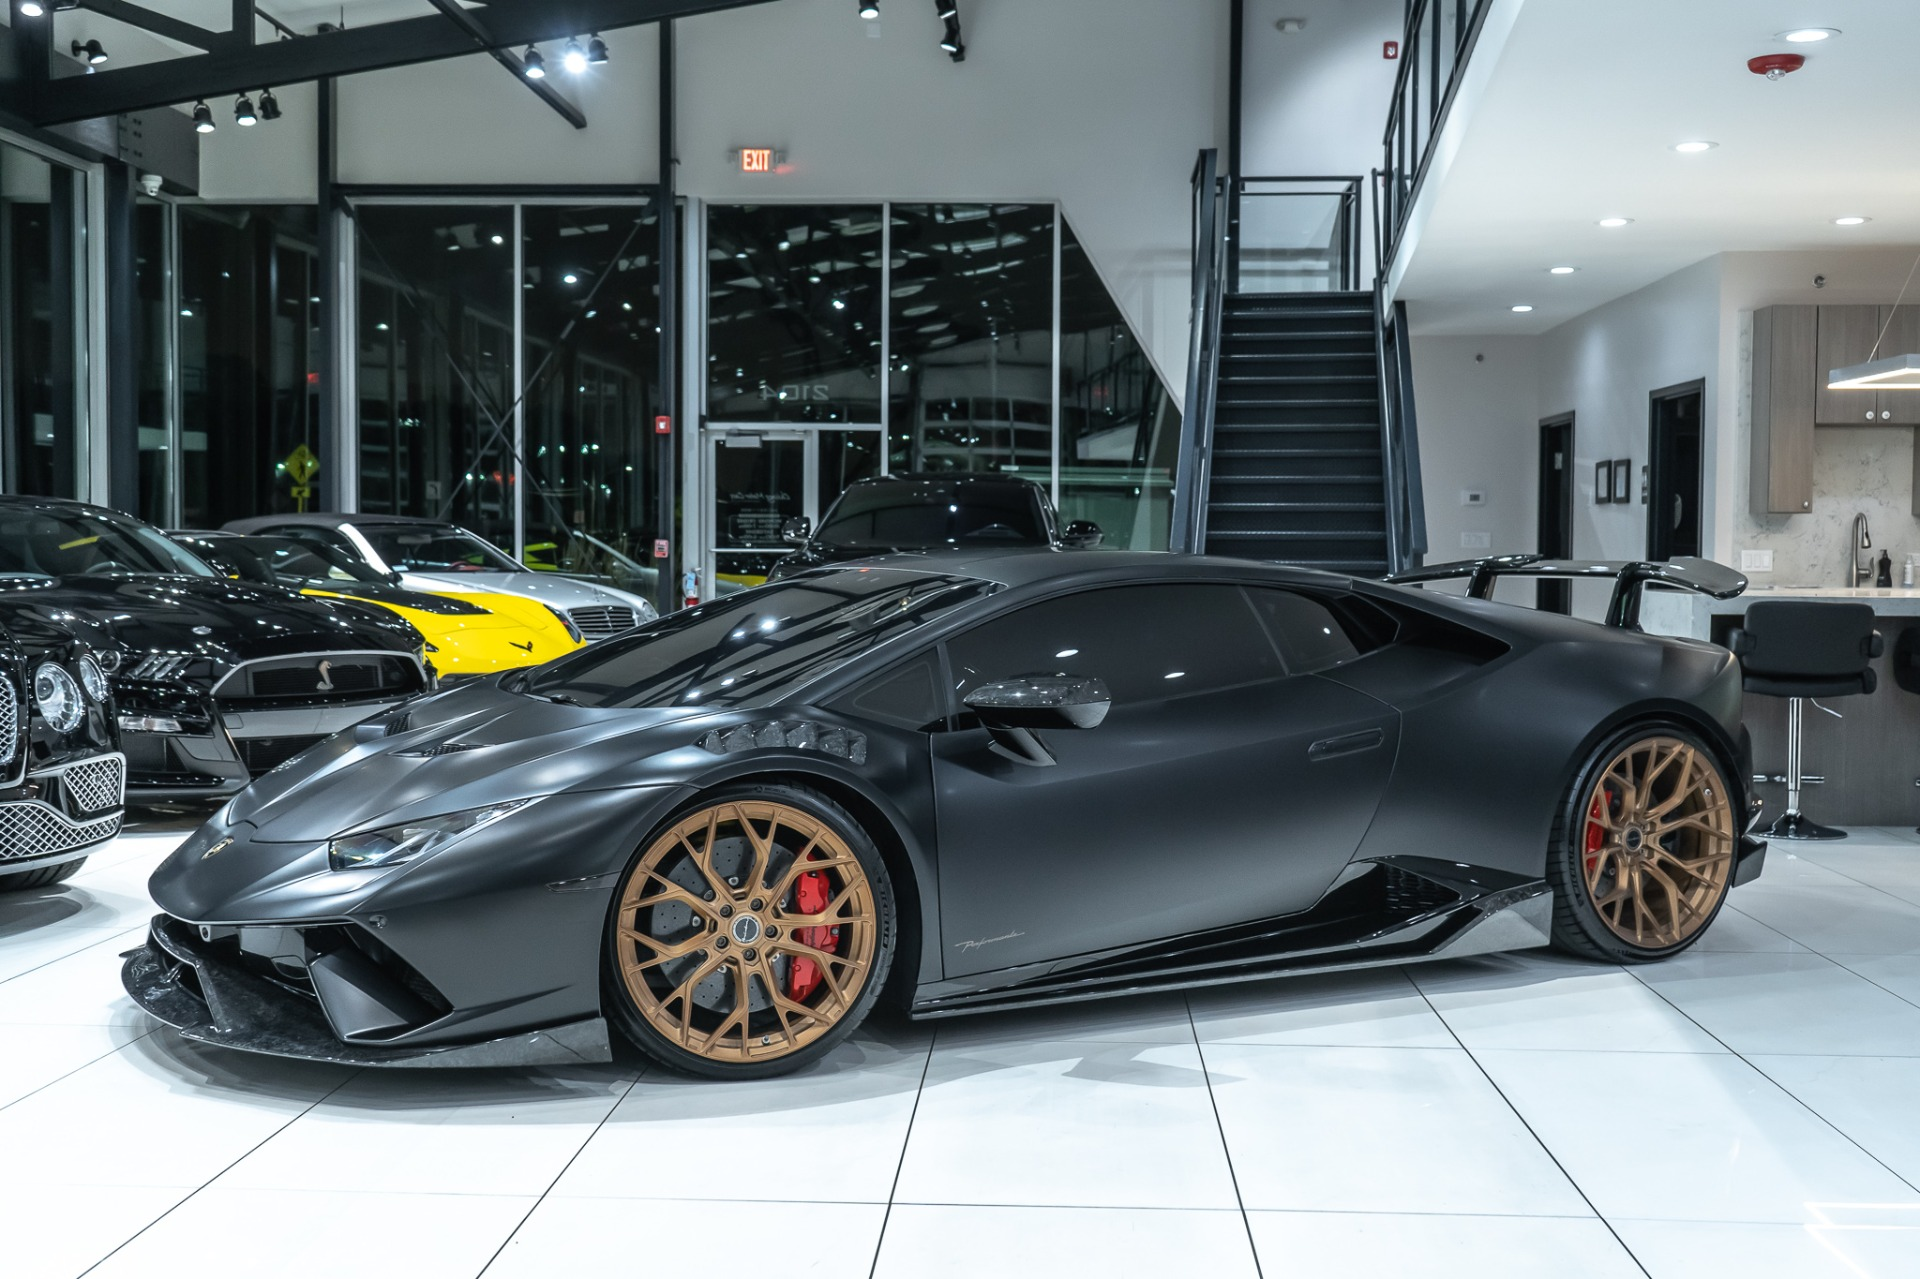 Used-2018-Lamborghini-Huracan-LP640-4-Performante-VF-Supercharged-Forged-Carbon-1016-Industries-Exterior